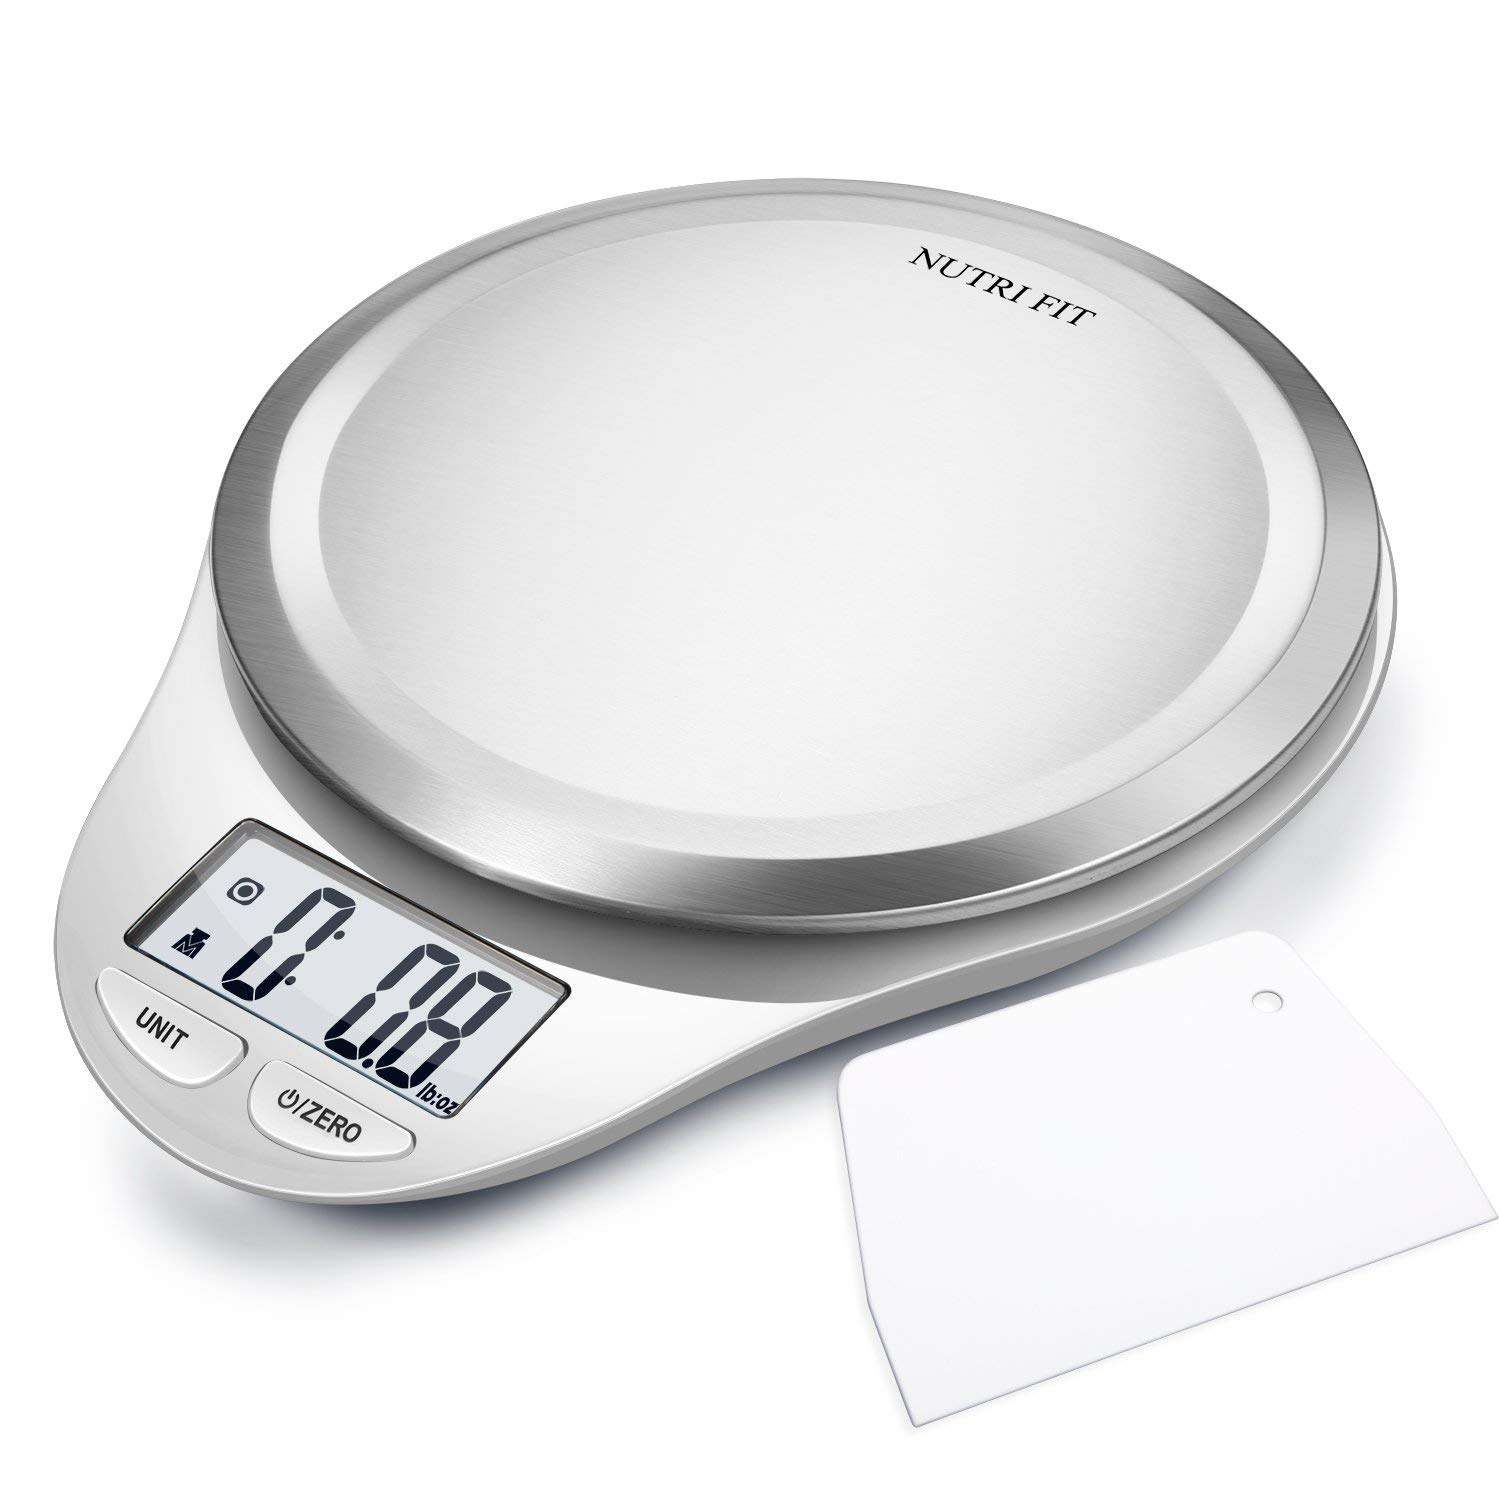 High Accuracy Multi-Function Digital Kitchen Food Scale w/Dough Scraper, Fingerprint Resistant Coating,Tare & Auto Off Function -White- $8.30 @ Amazon